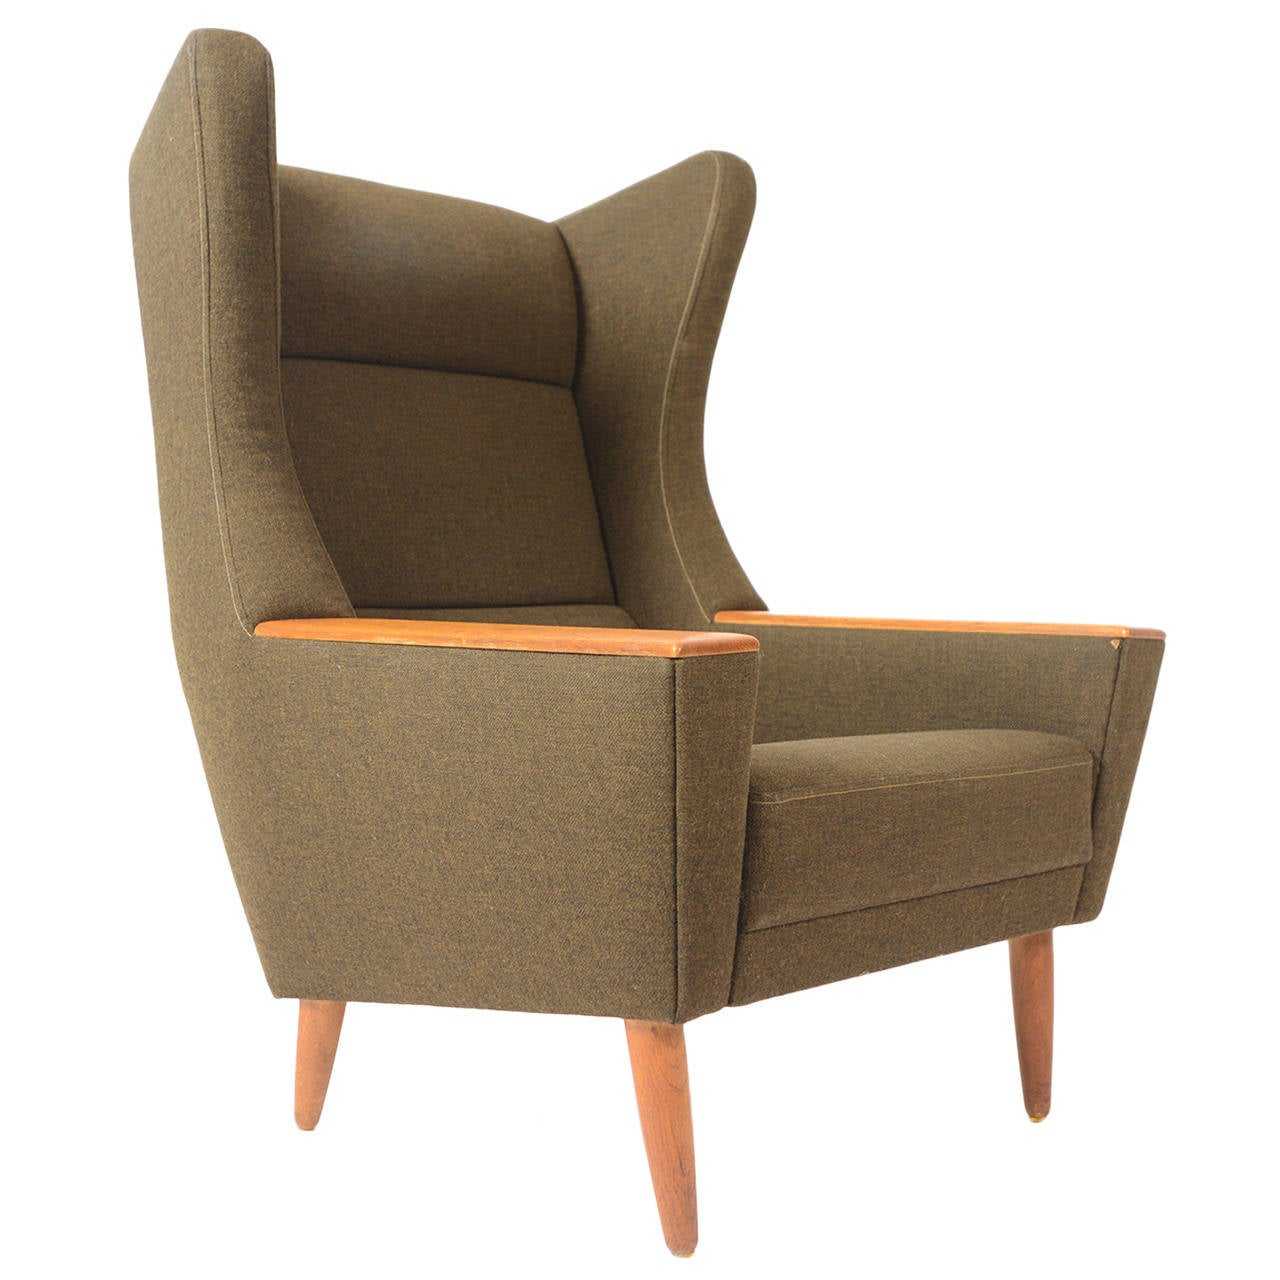 Genial Danish Modern Wingback Oak And Olive Lounge Chair For Sale At 1stdibs